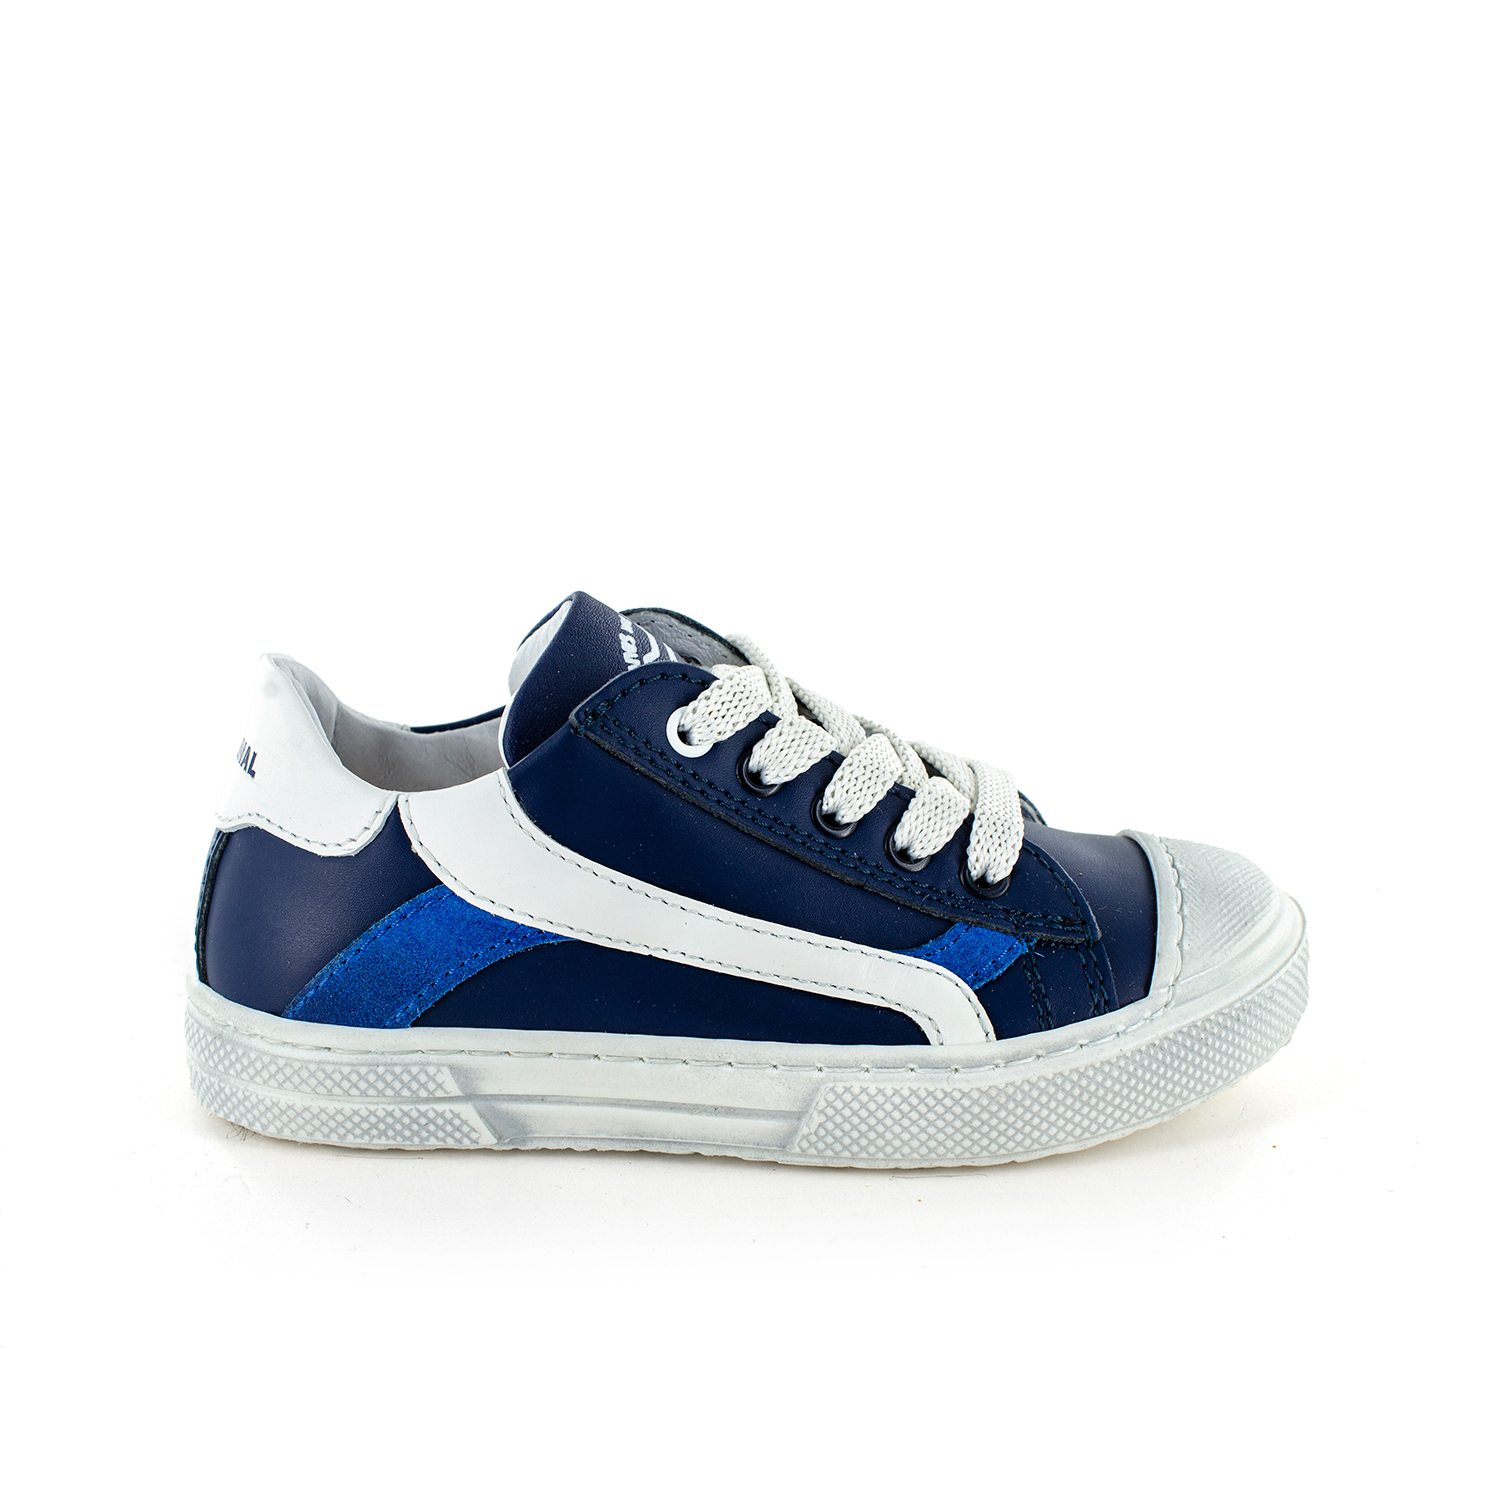 MAUST calf navy + white